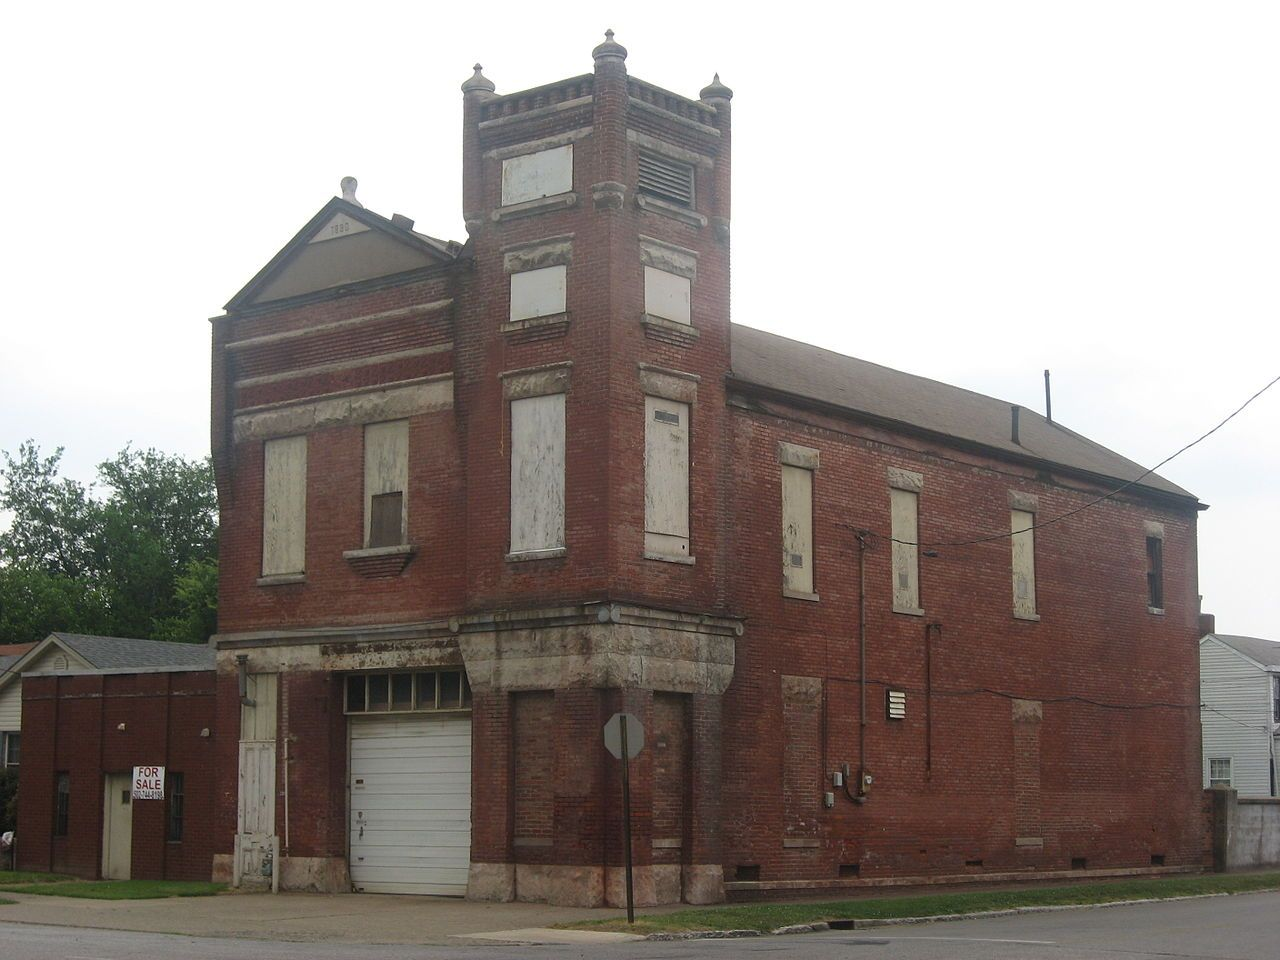 Hook and Ladder Company No. 4 in Louisville's West End, Kentucky.